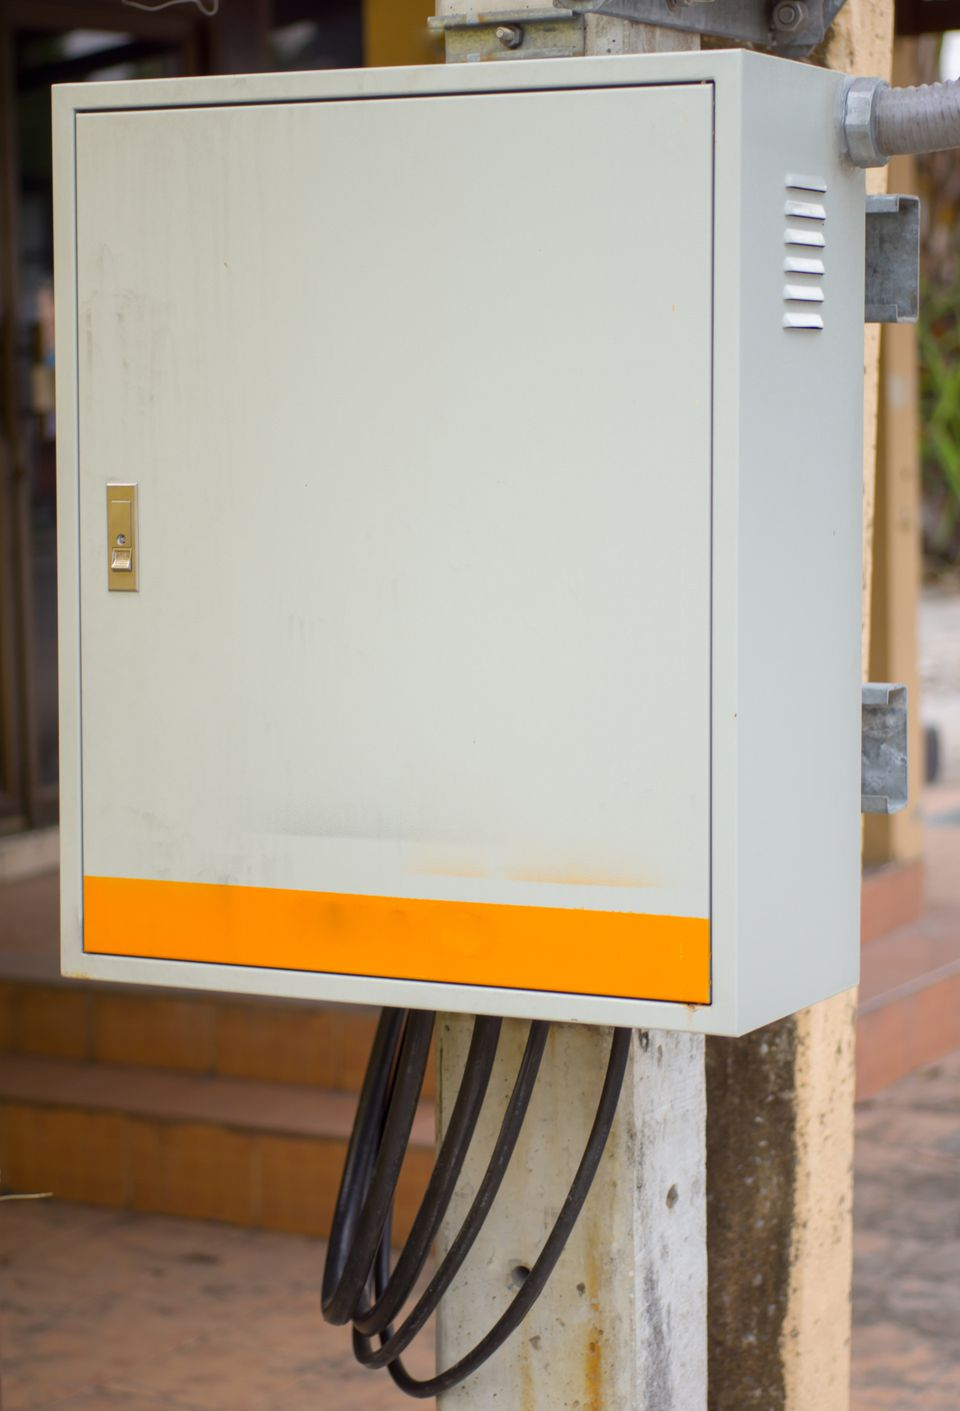 Weatherproof Electrical Box